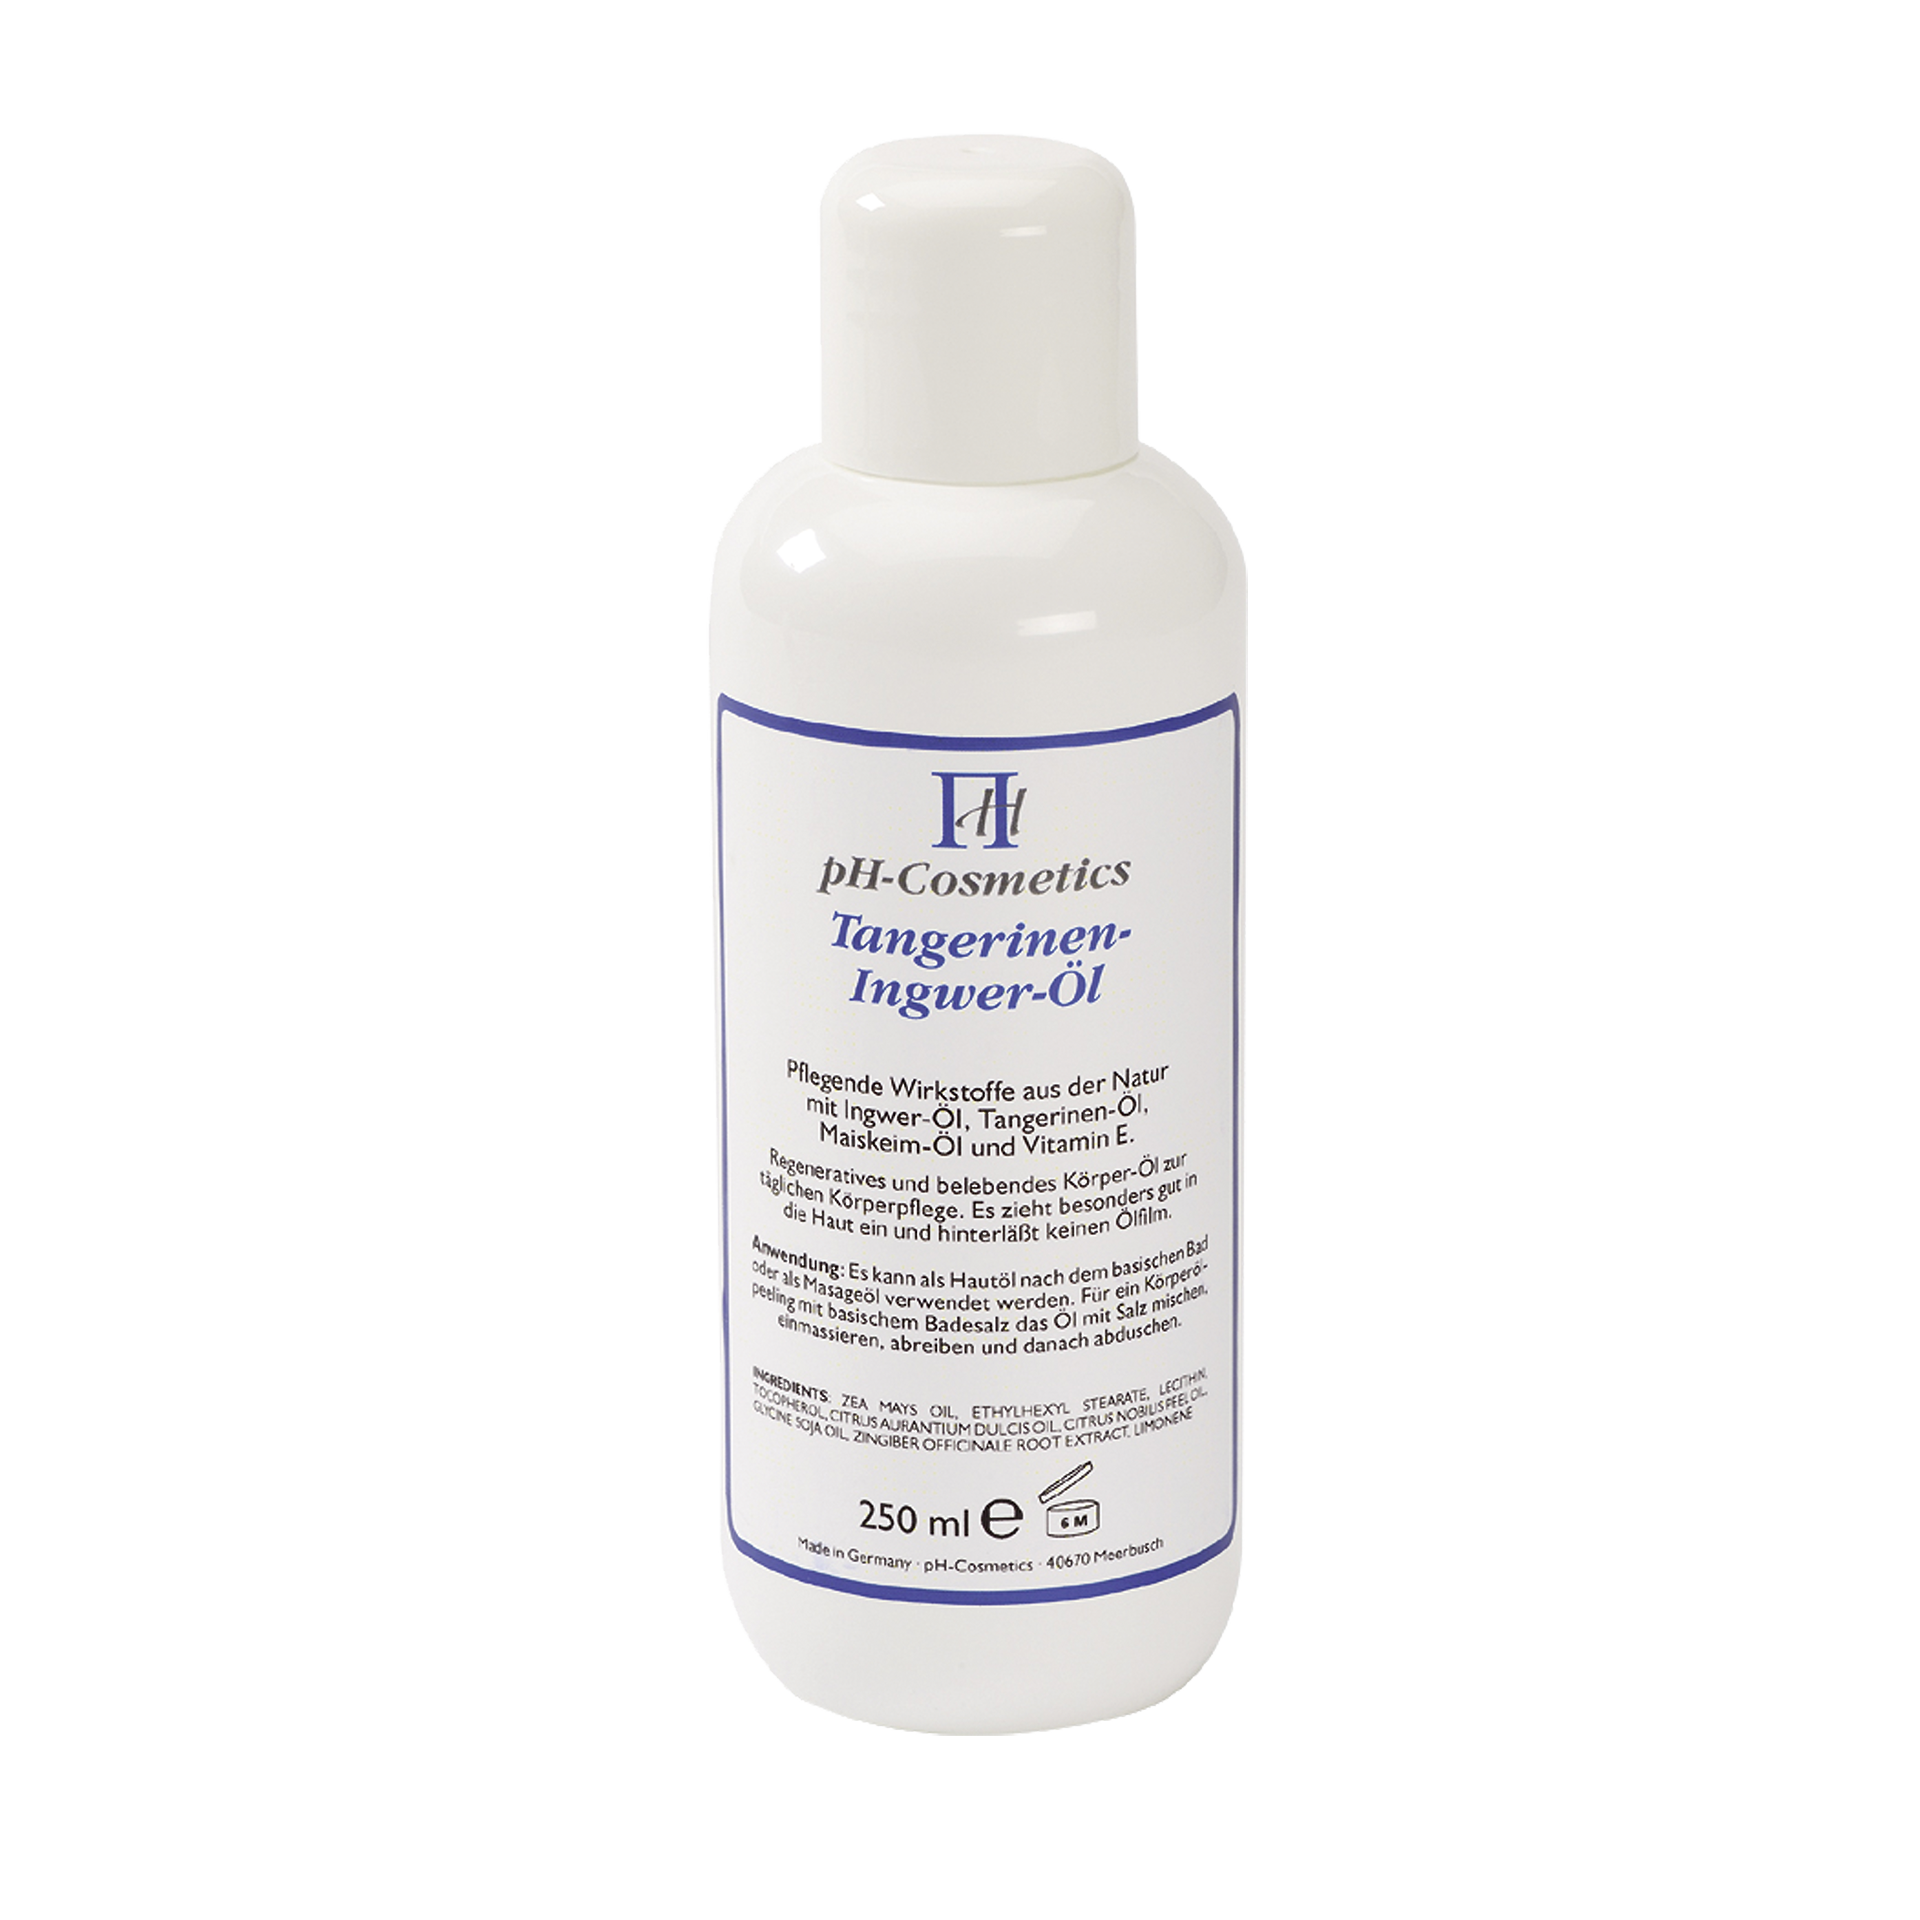 pH-Cosmetics Tangerinen-Ingwer-Öl, 250 ml